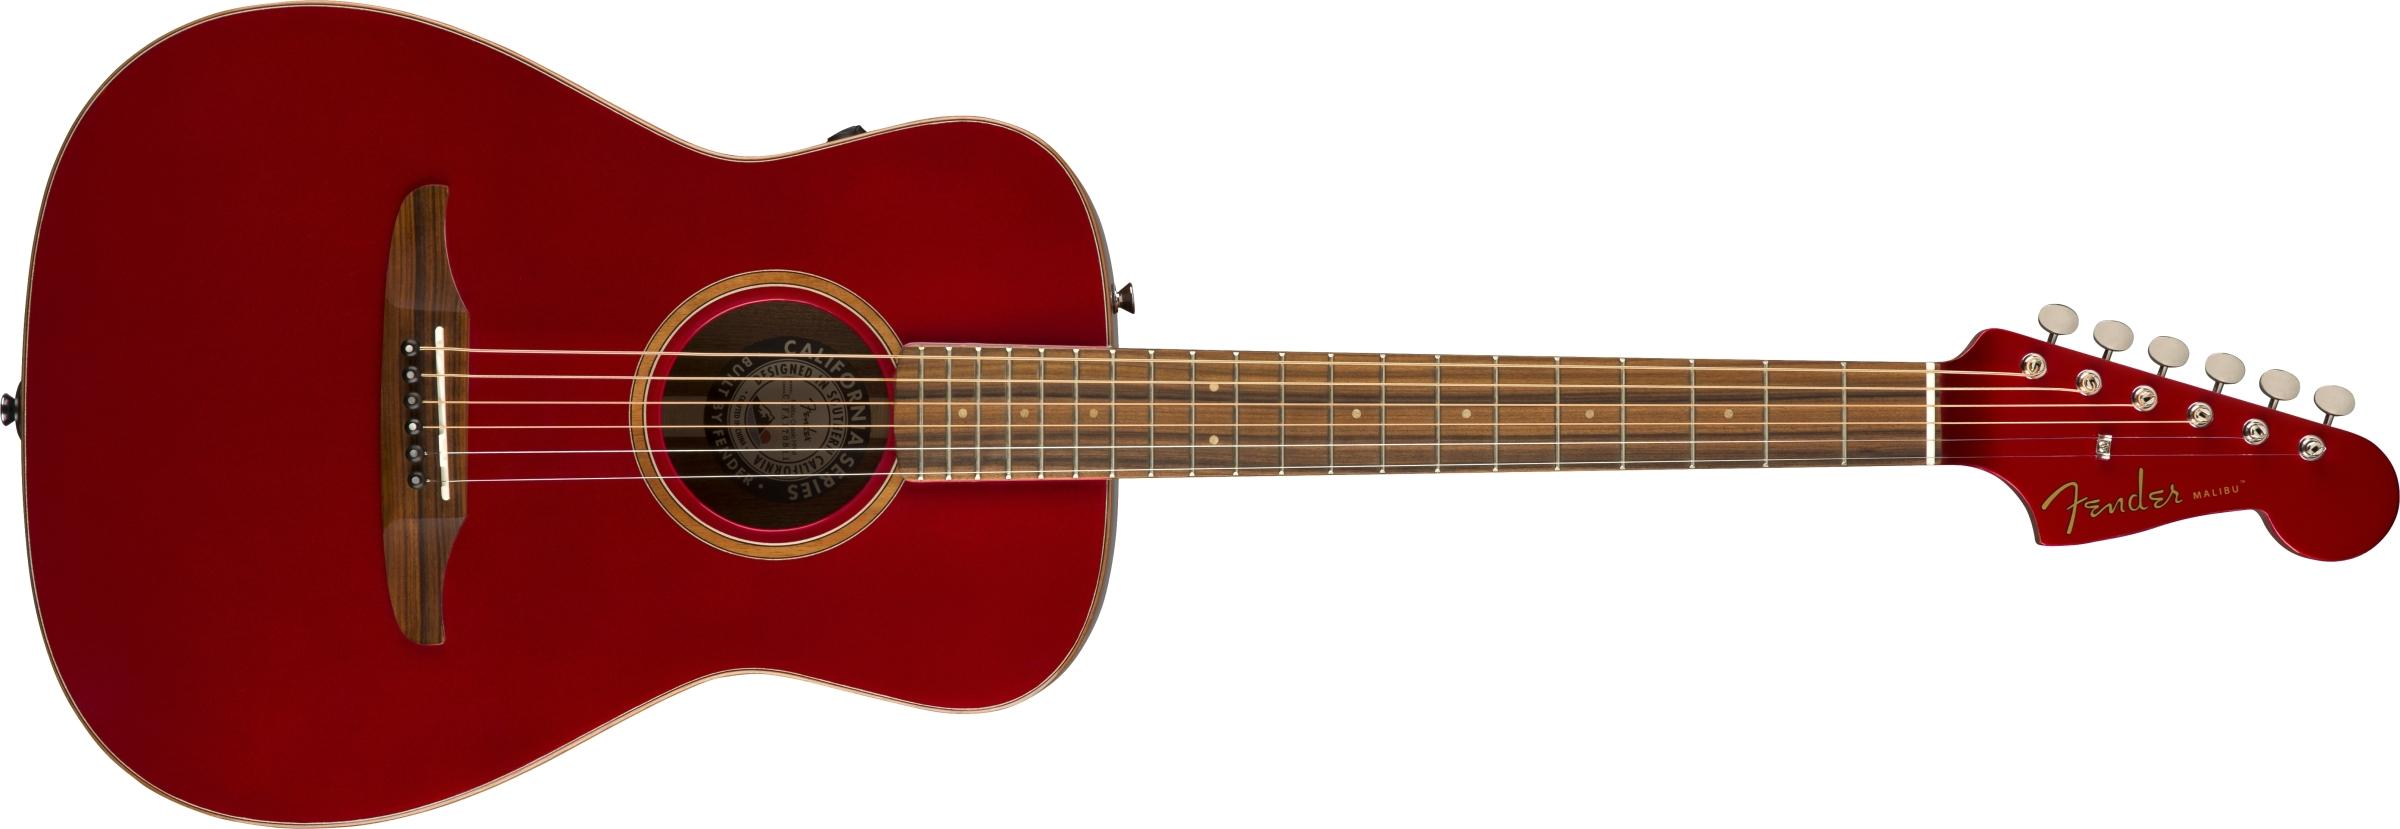 Malibu Classic Acoustic Guitars Need To Know The Parts Of Electric Guitar Tap Expand